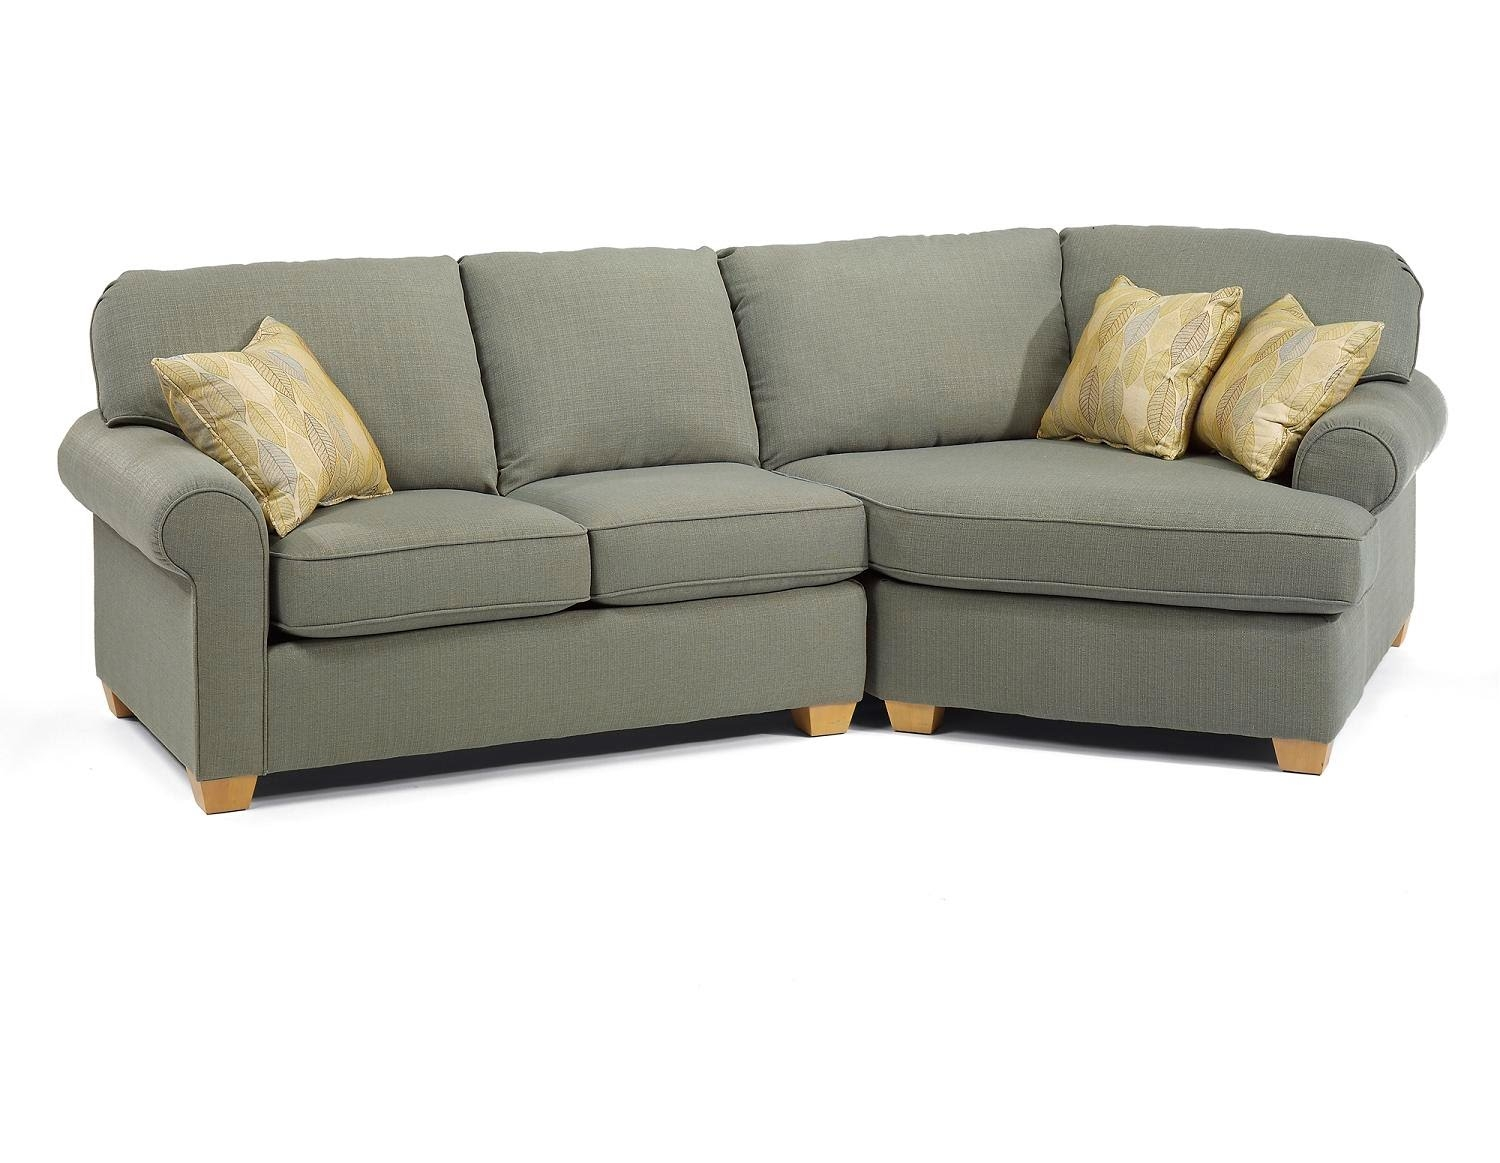 Condo Sized Furniture Vancouver 15 43 Condo Sectional Sofas Sofa Ideas